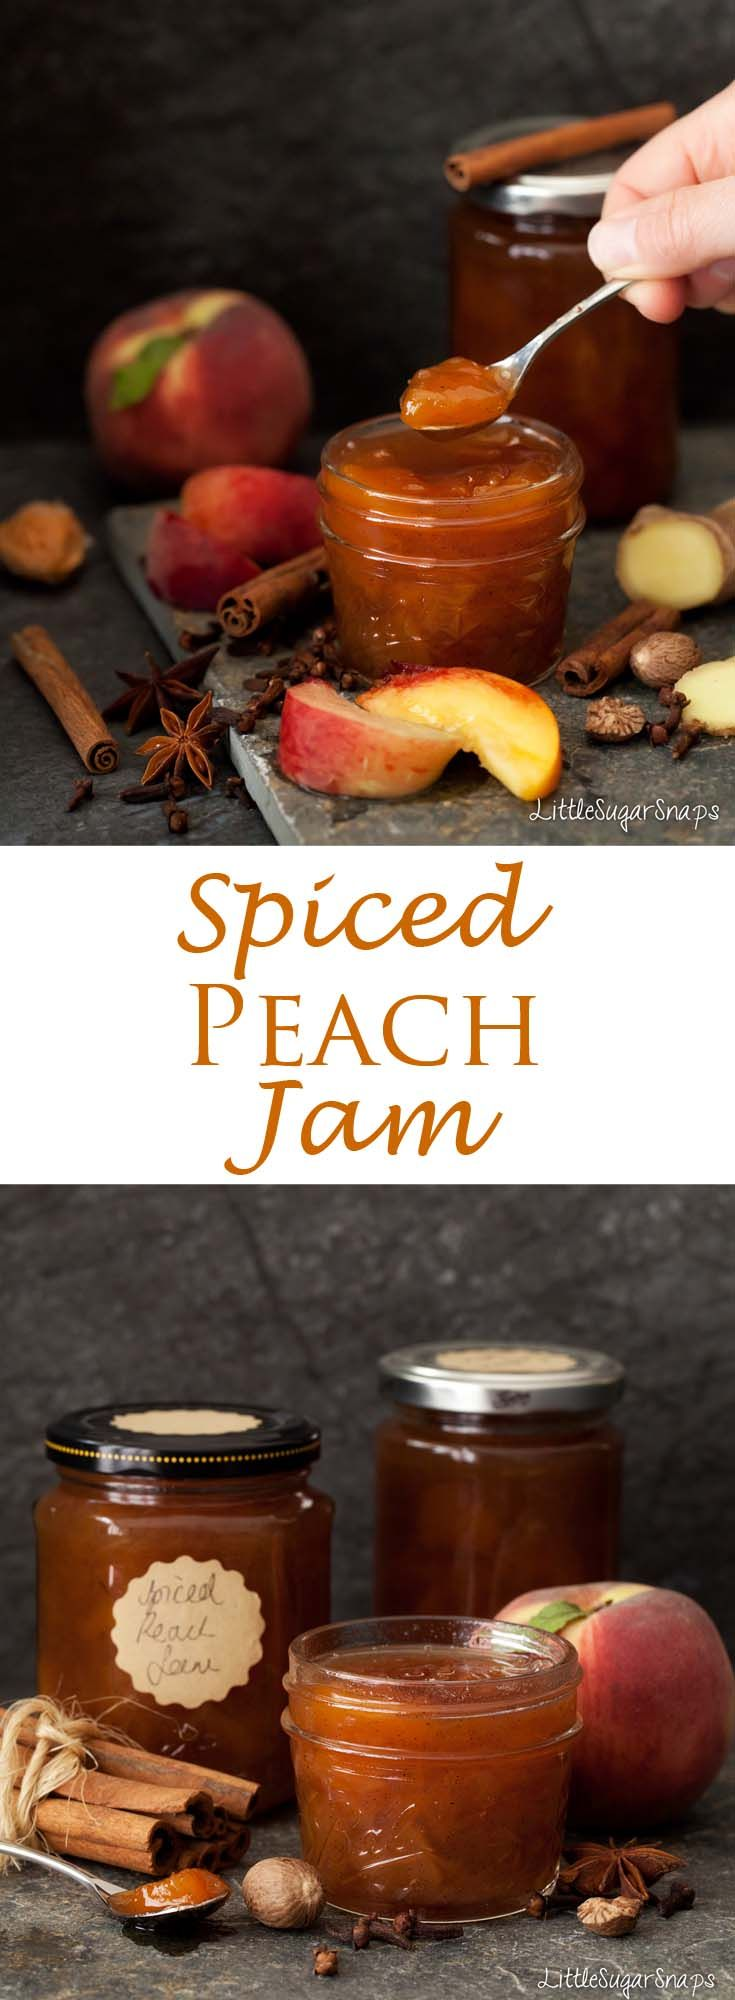 Spiced Peach Jam, Use these spices, but regular jam recipe w/pectin